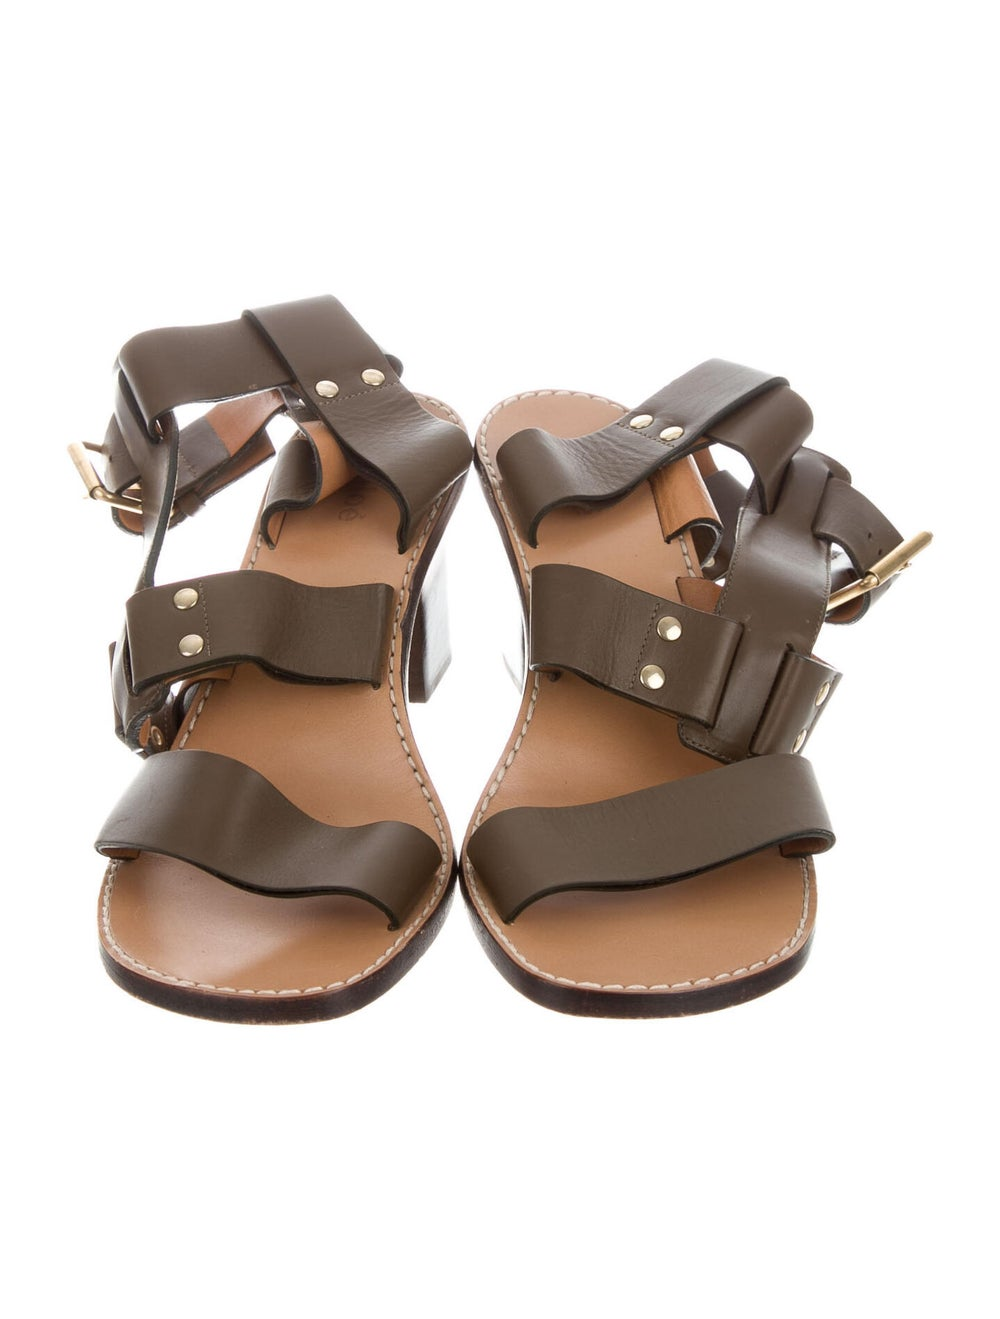 Chloé Leather Gladiator Sandals - image 3